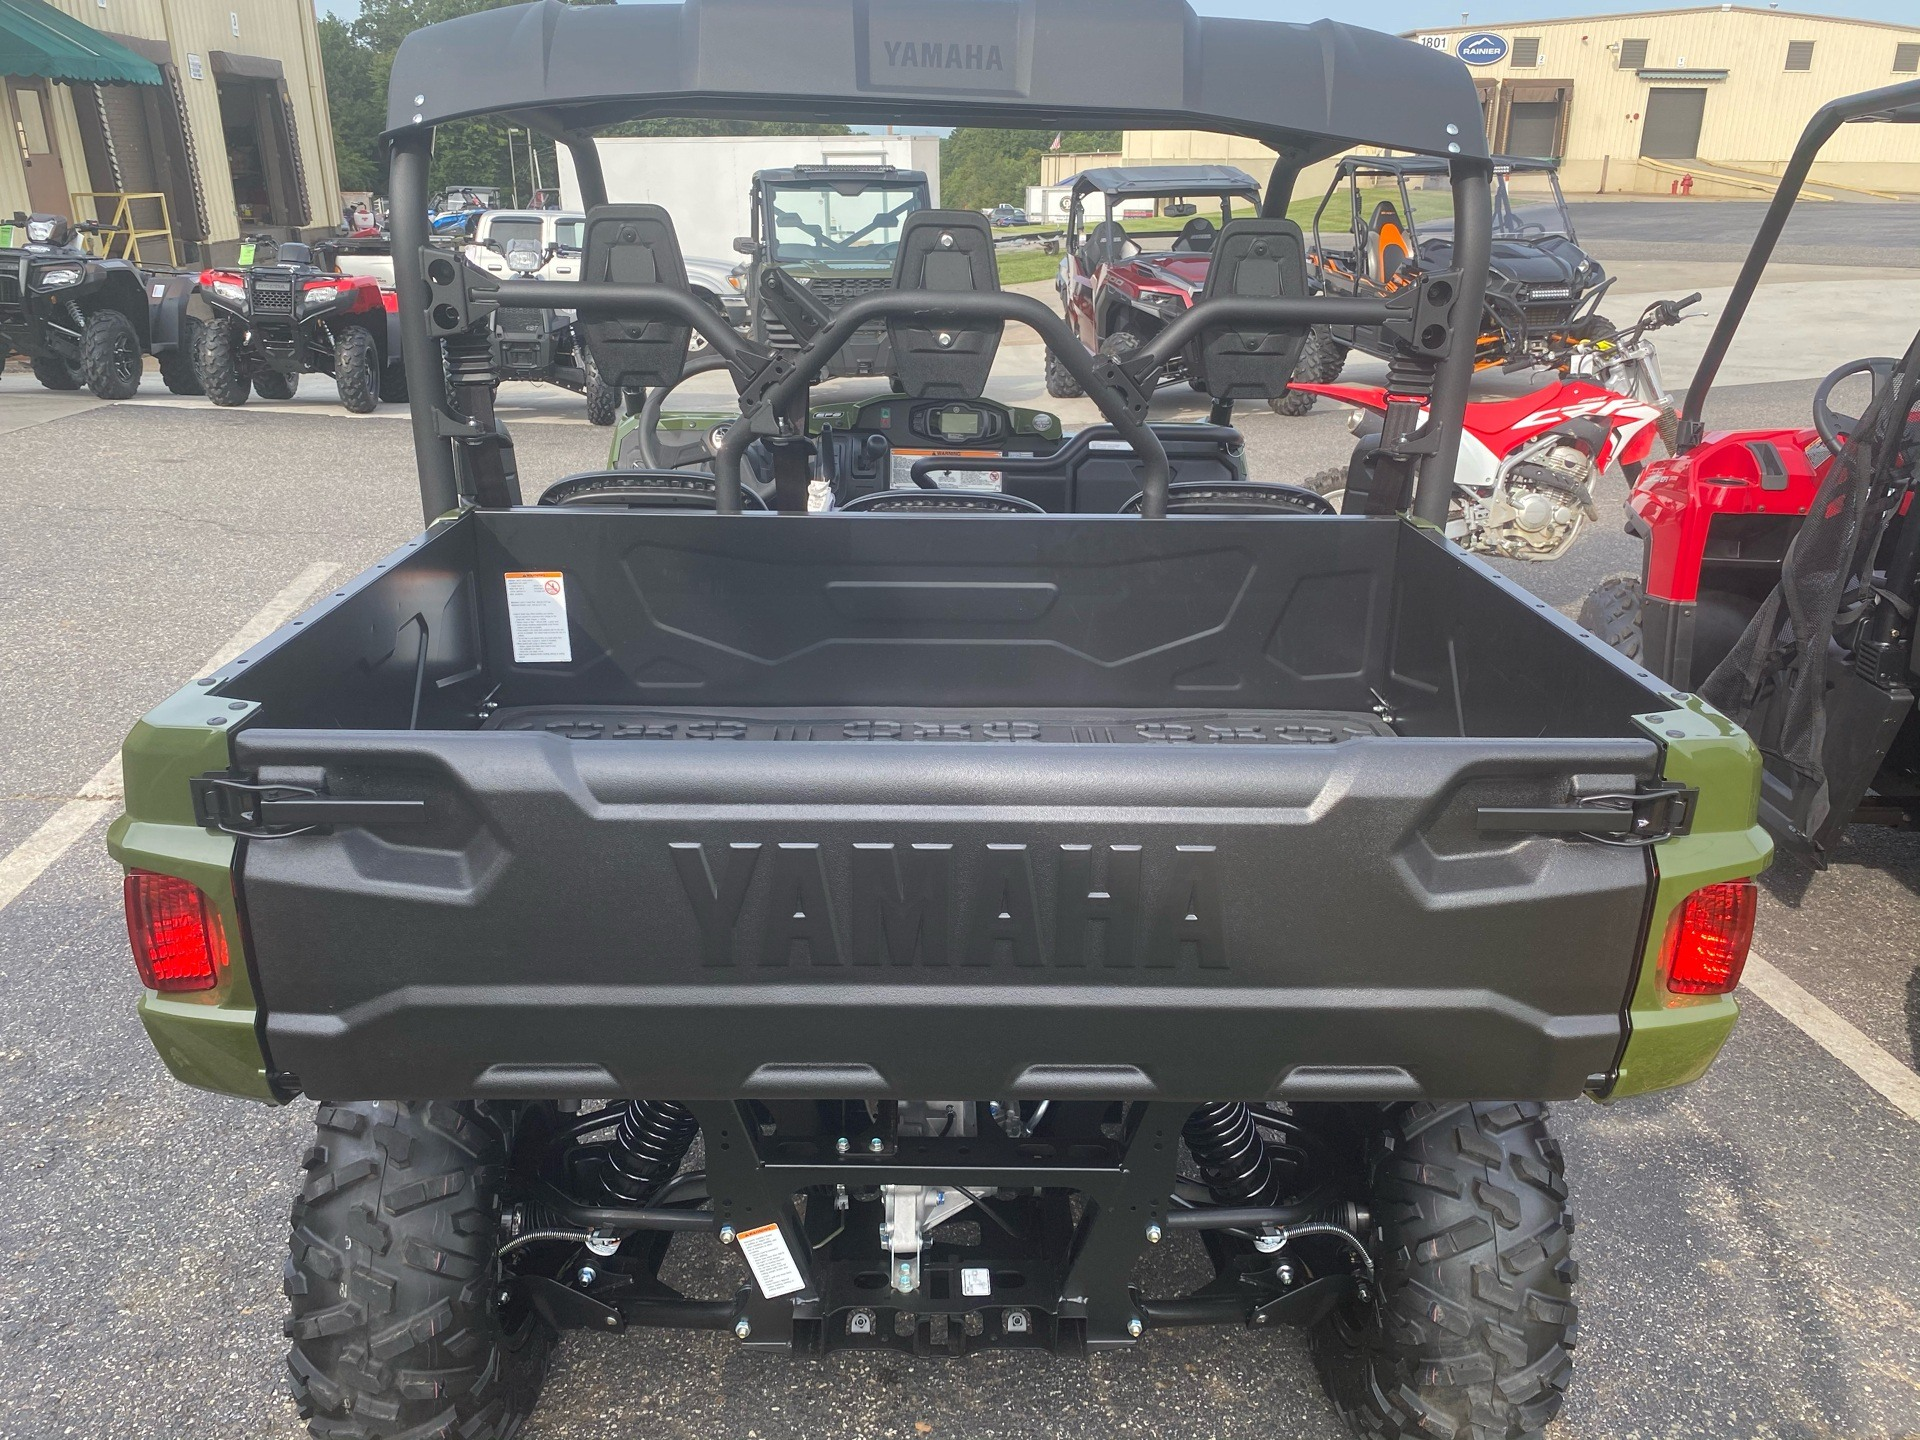 2020 Yamaha Viking EPS in Statesville, North Carolina - Photo 5